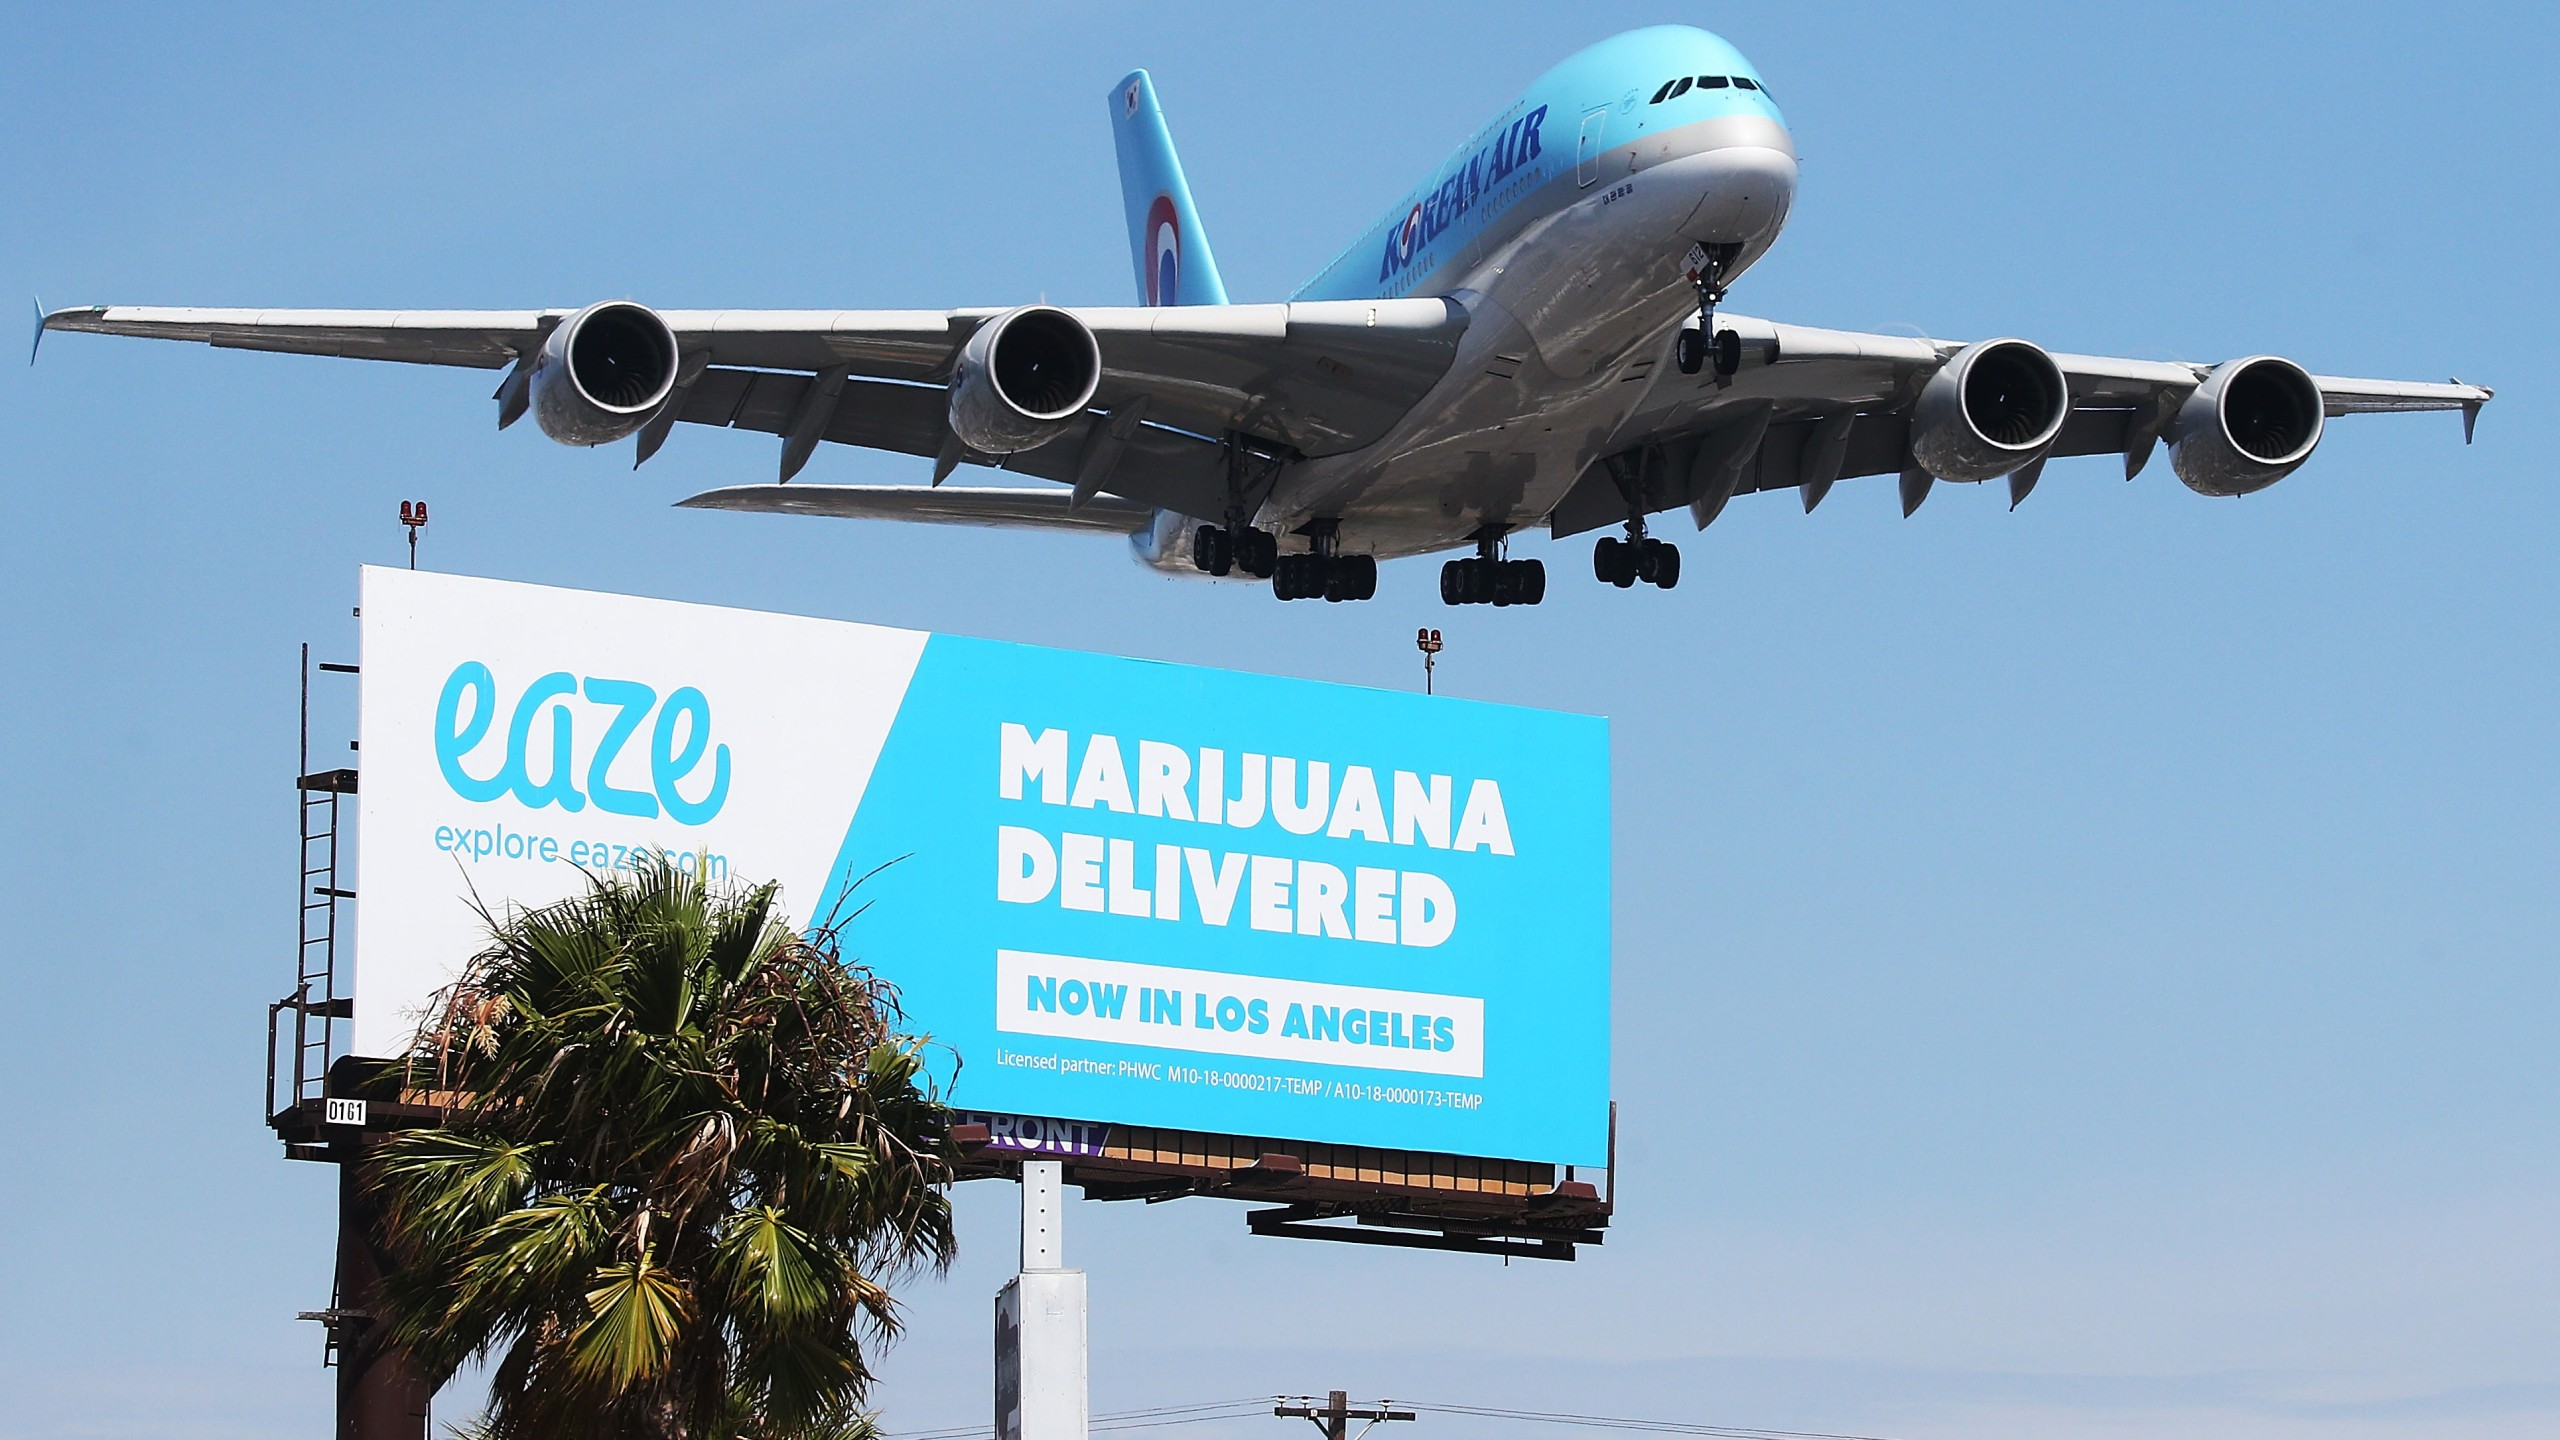 An airplane flies above a billboard advertising the marijuana delivery service Eaze, as the plane approaches landing at Los Angeles International Airport on July 12, 2018, in Los Angeles. (Credit: Mario Tama/Getty Images)